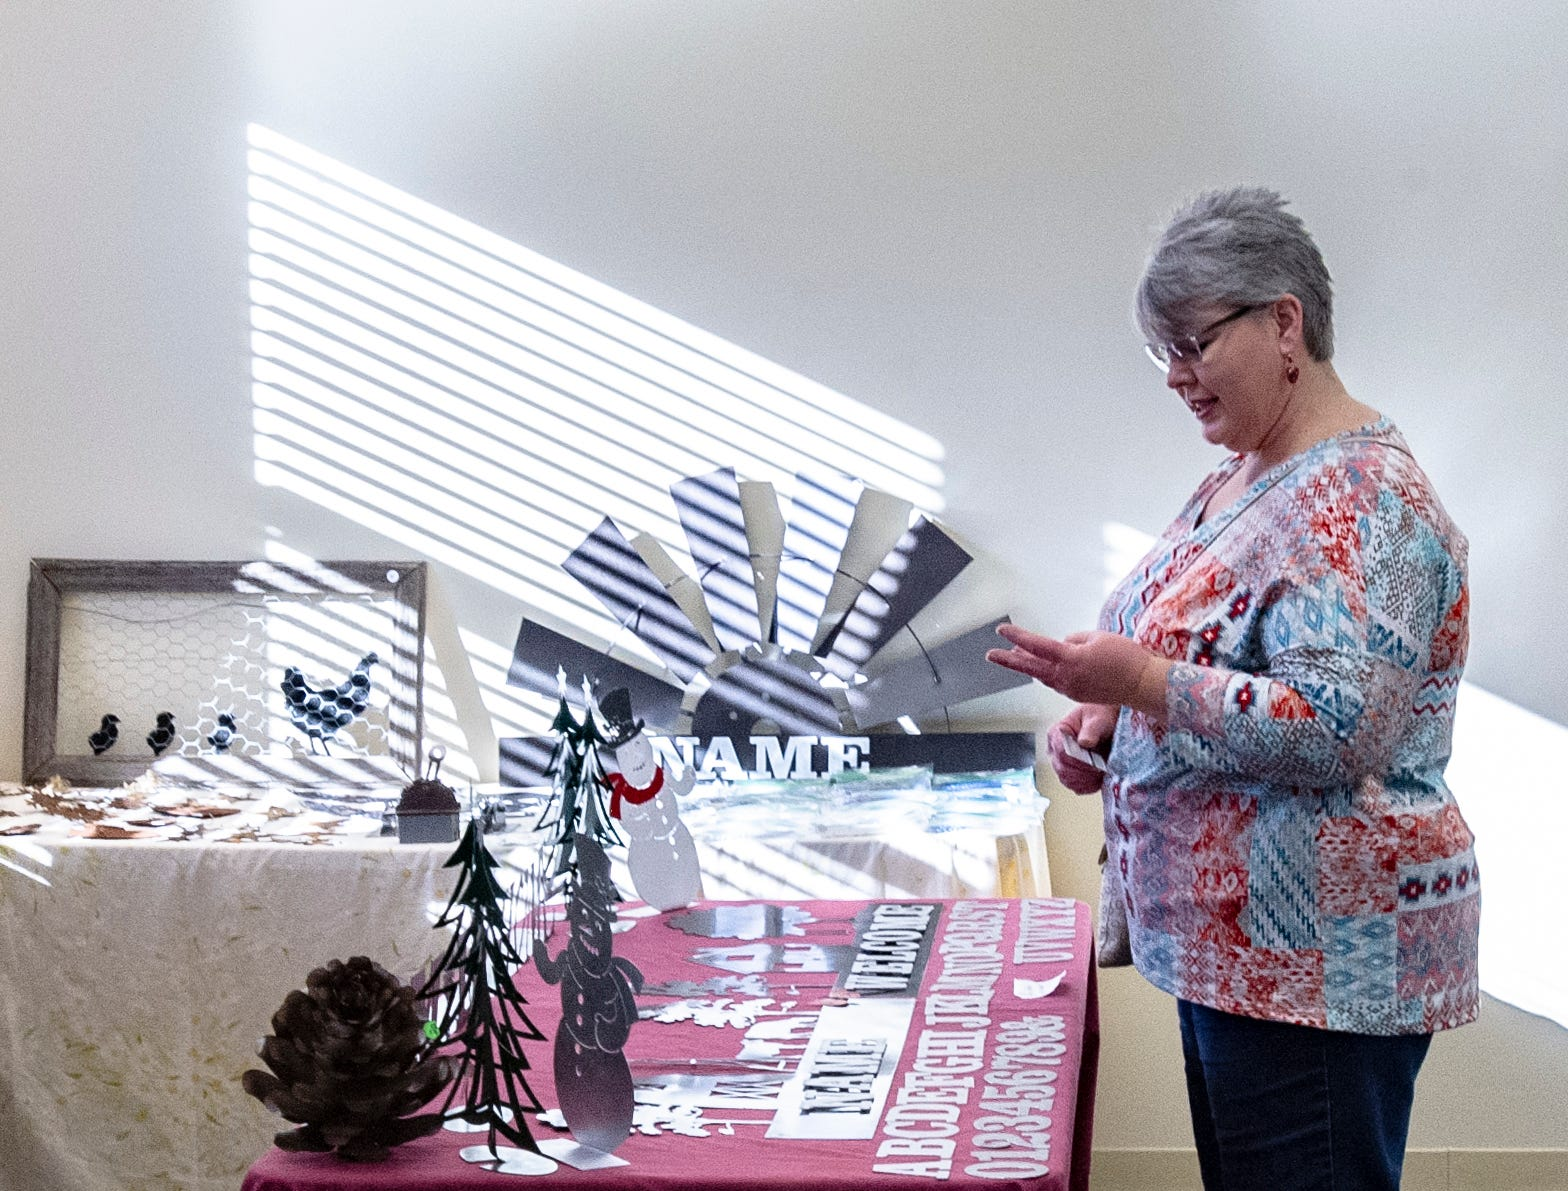 Donna Acheson, of Indianola, takes a look at the art made by  Pollock Welding of Mount Ayr at the Rustiqueiowa Homespun Holiday Market held at the Trinity Presbyterian Church in Indianola Nov. 24, 2018.